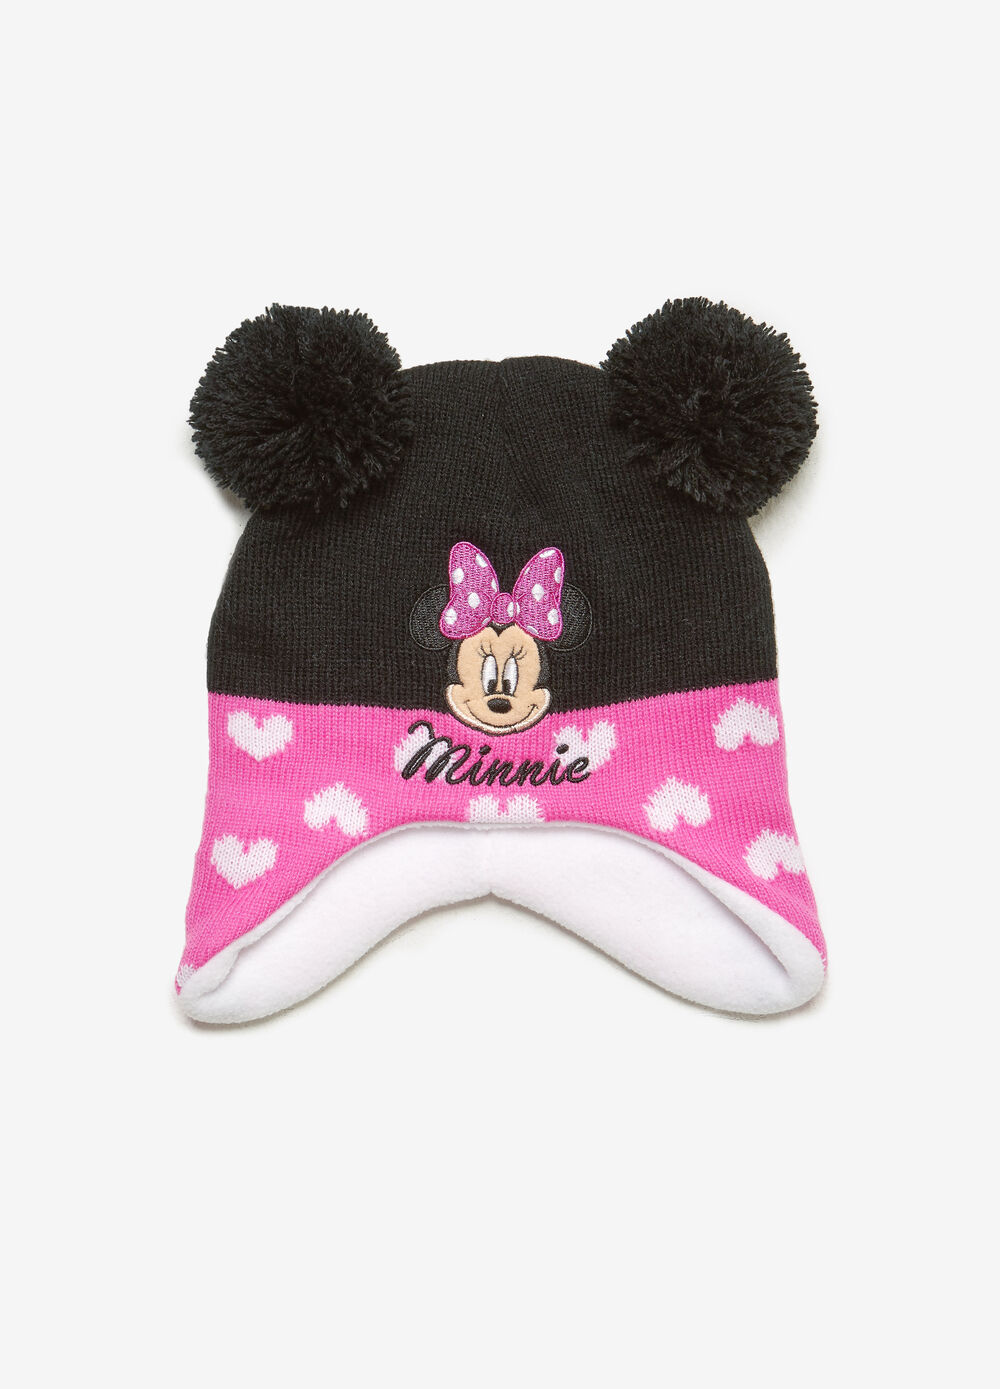 Two-tone beanie cap with hearts and Minnie Mouse